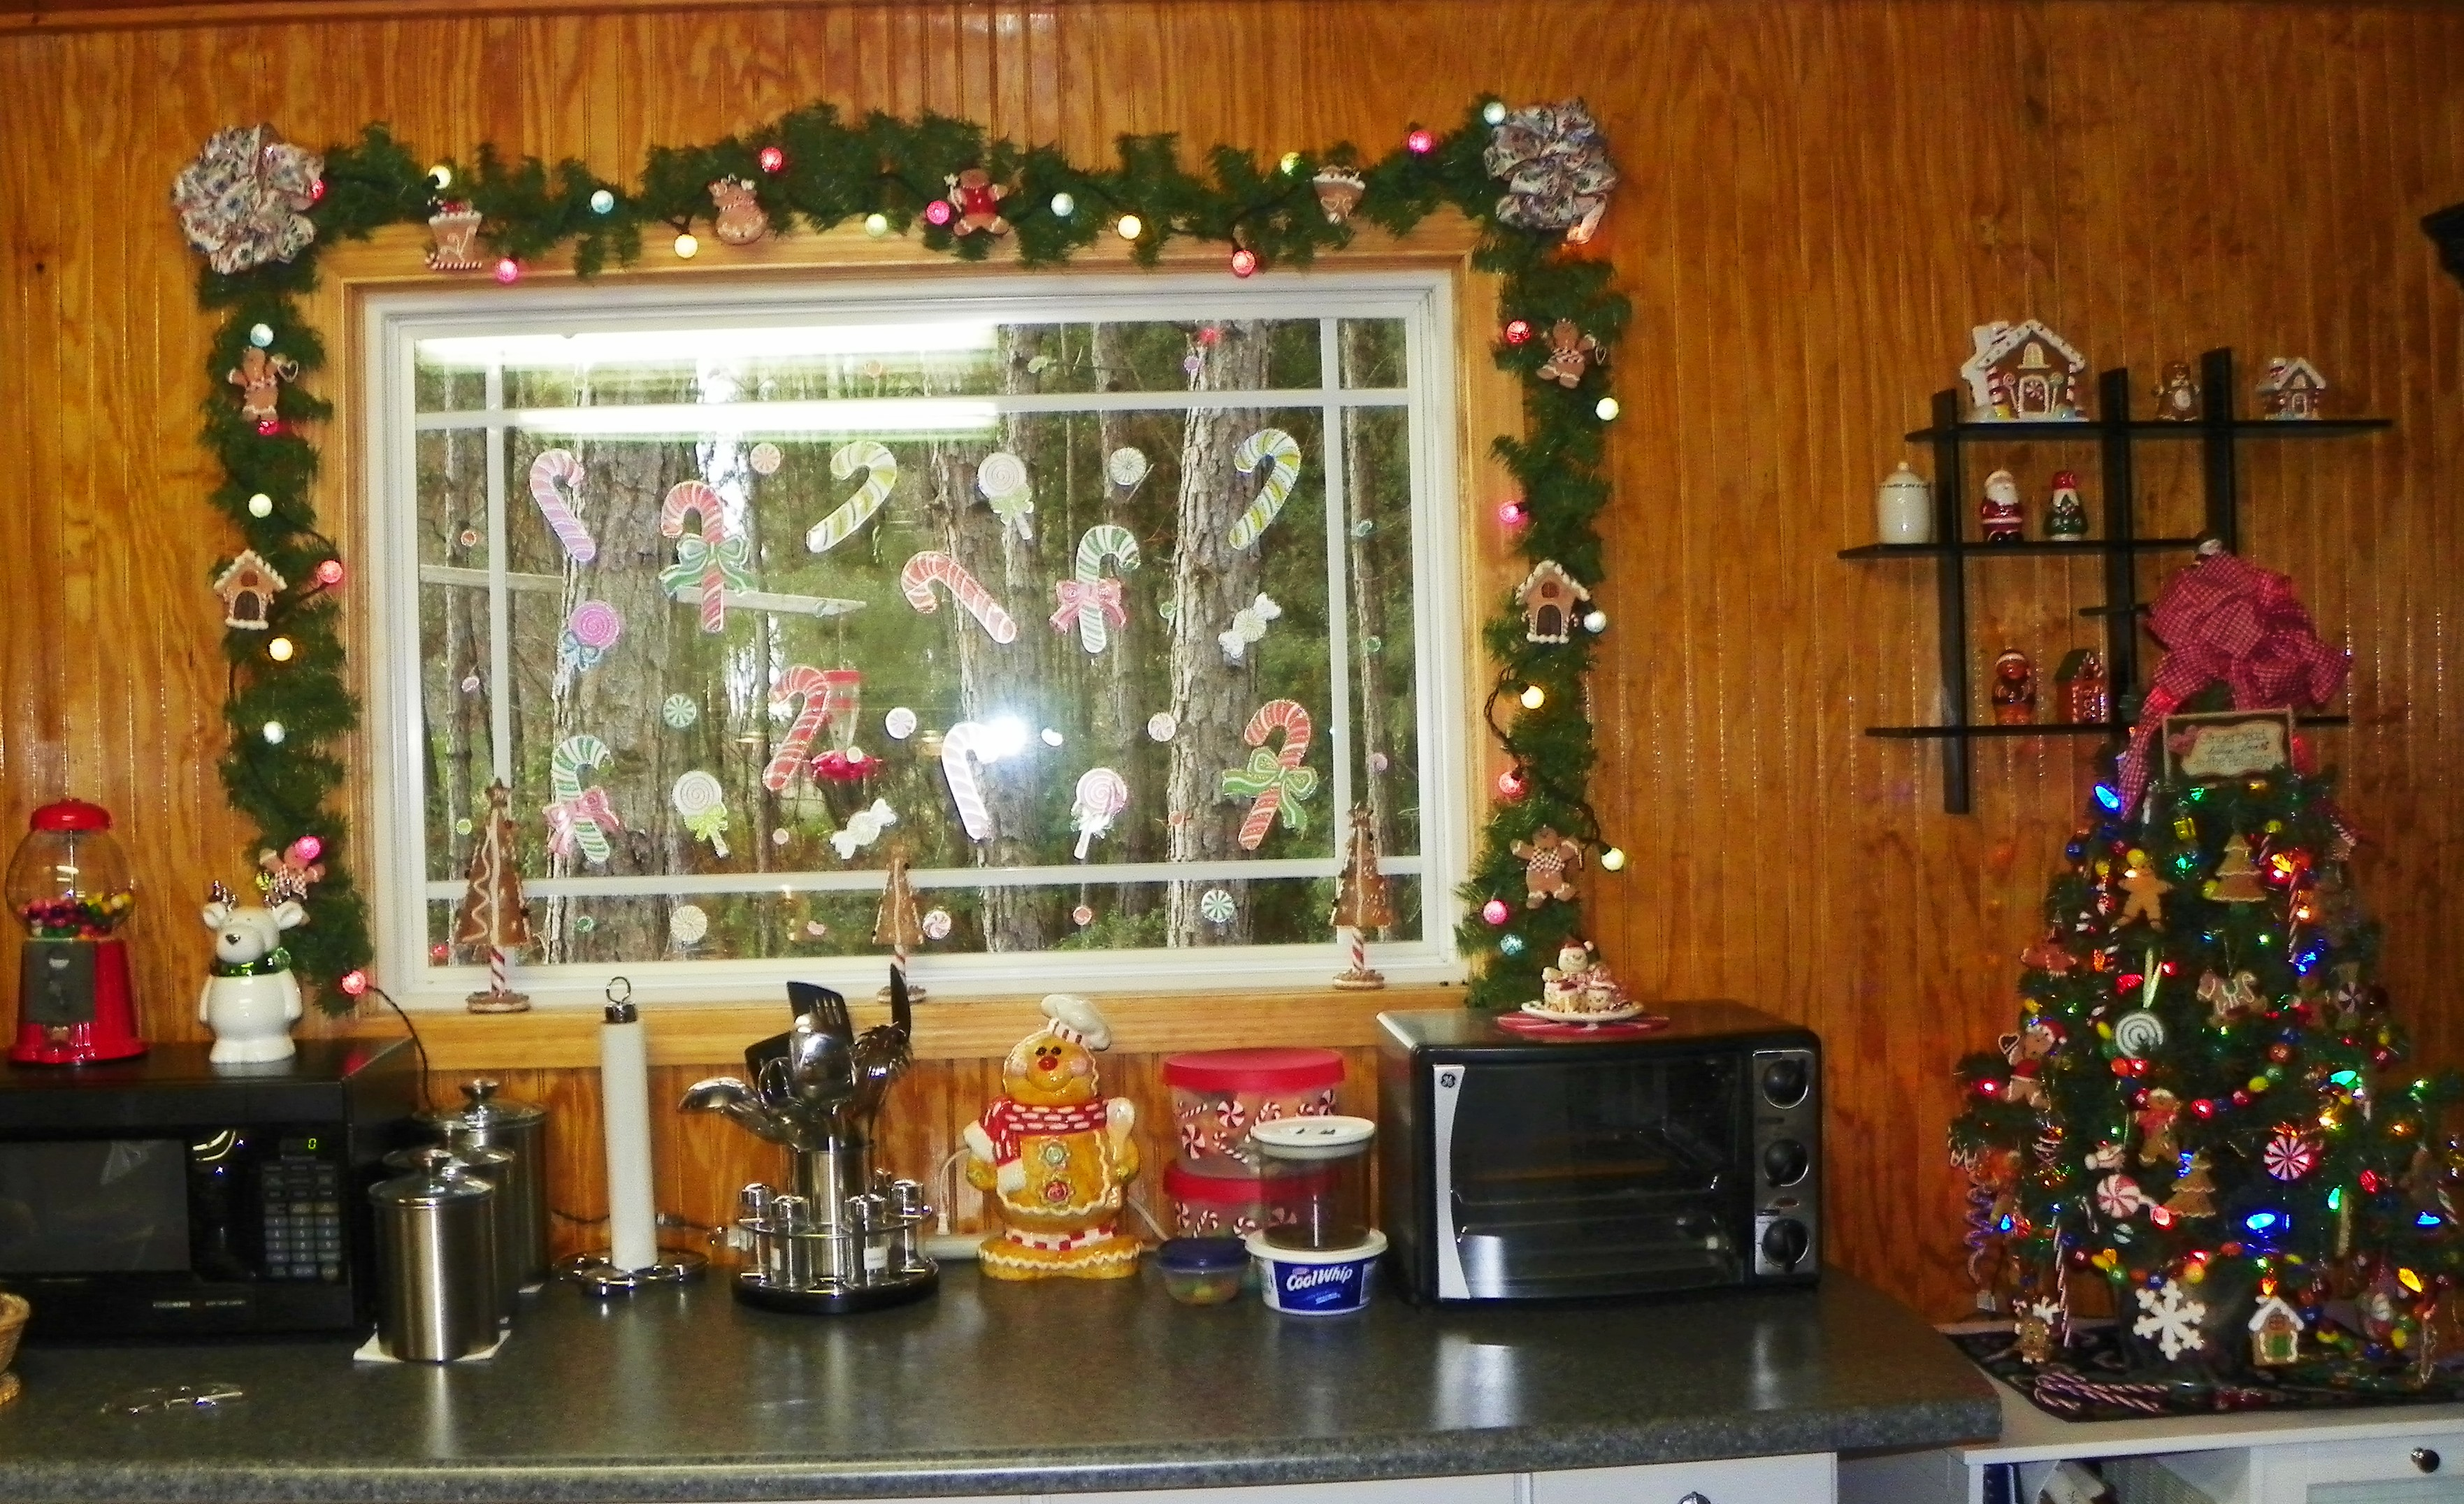 Christmas Decorations For Kitchen Christmas Decorations Reflectionsby Kathy